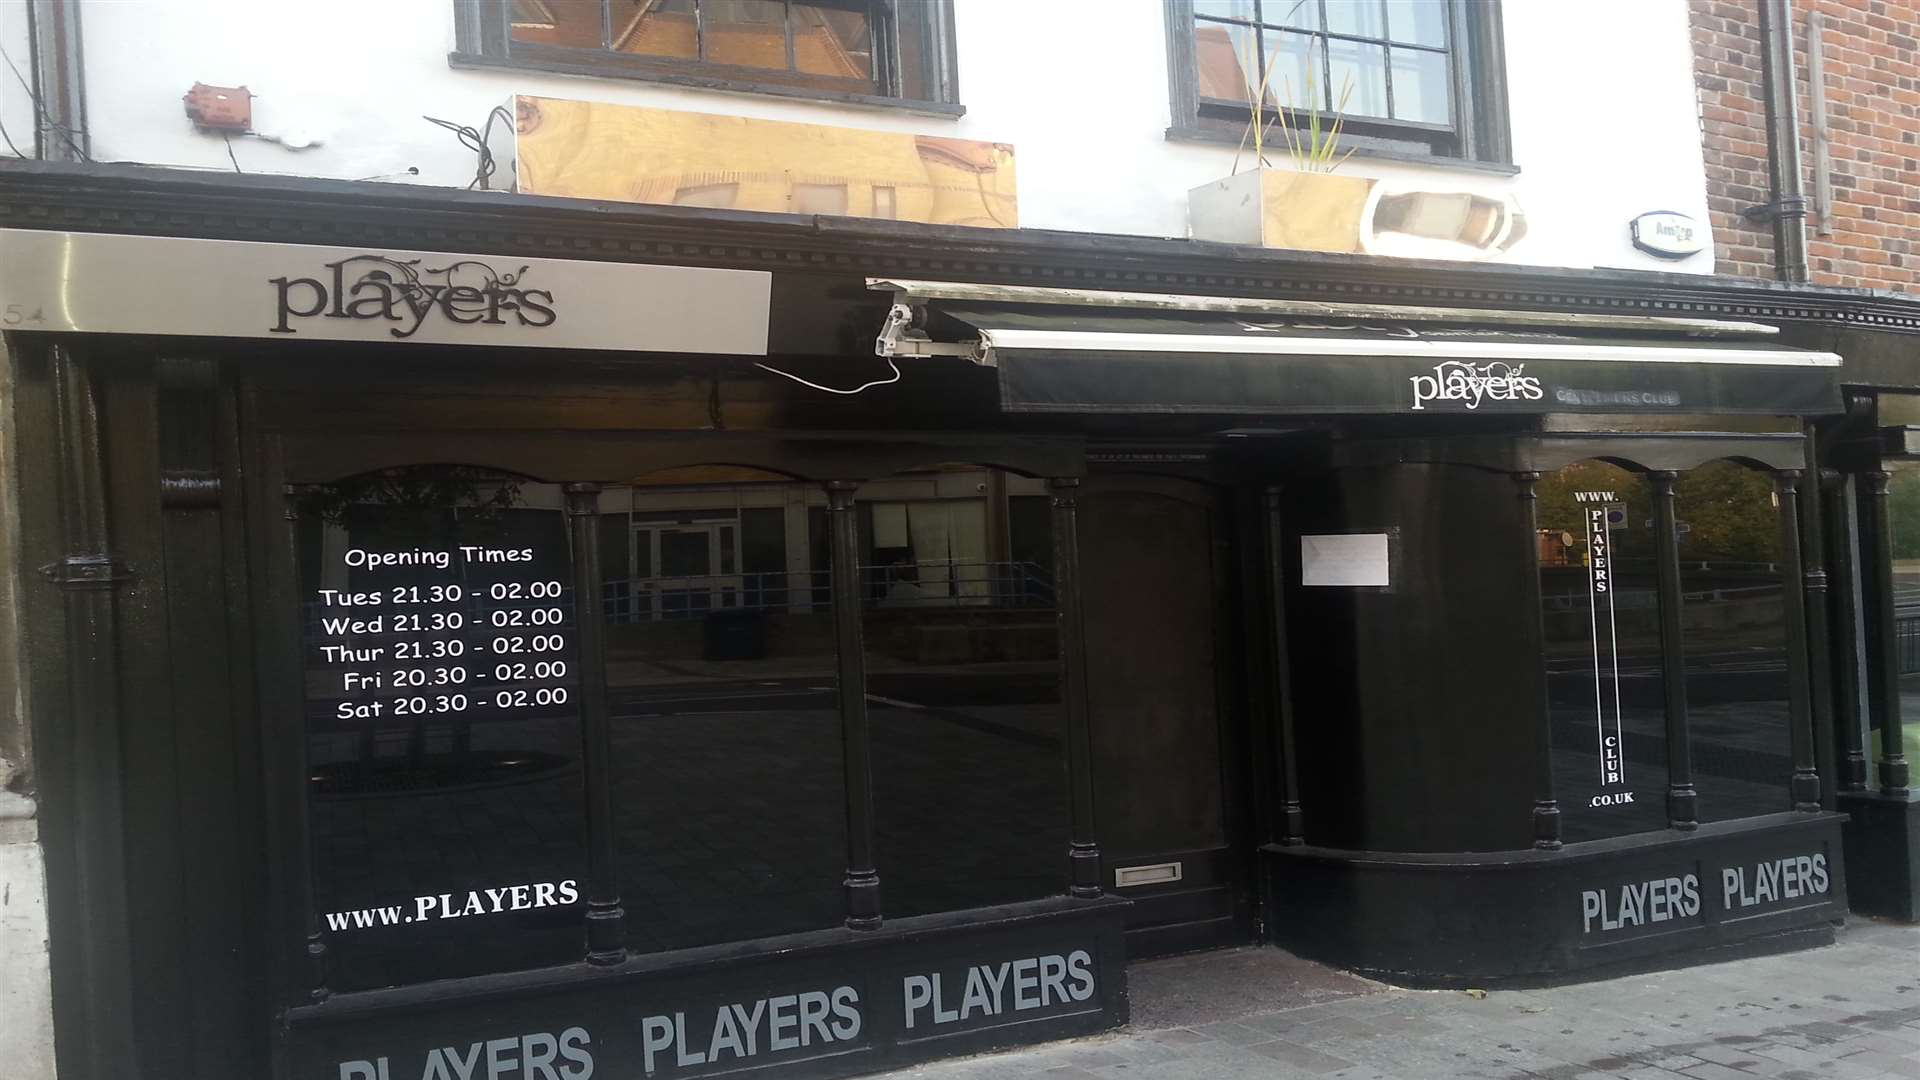 Players Club in Maidstone high street